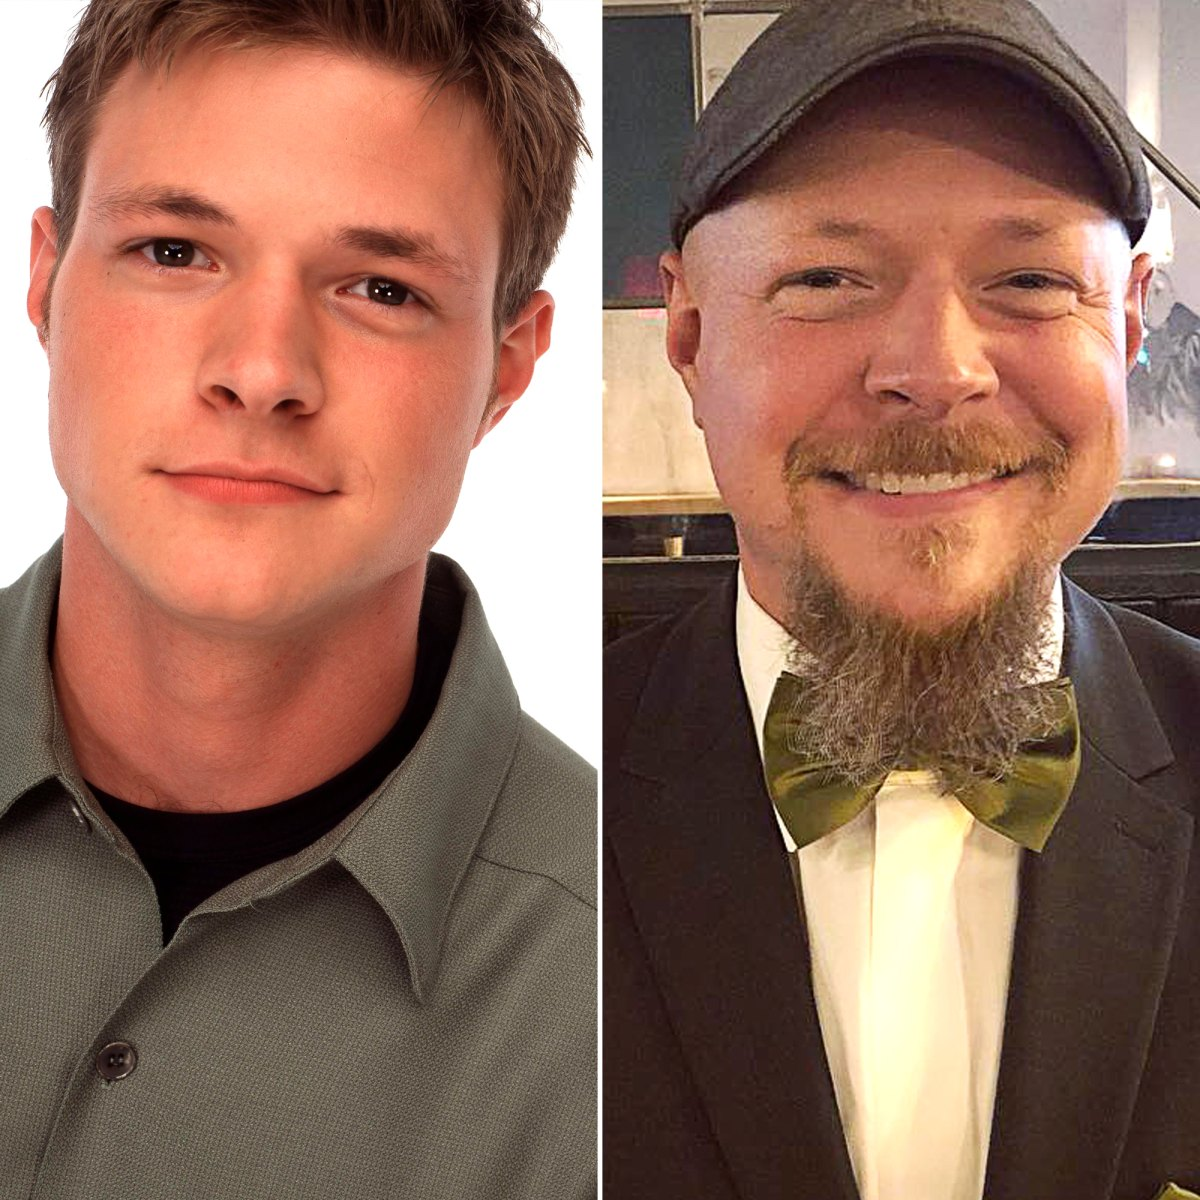 Sabrina The Teenage Witch Cast Where Are They Now Paul, minnesota, usa as nathaniel eric richert. sabrina the teenage witch cast where